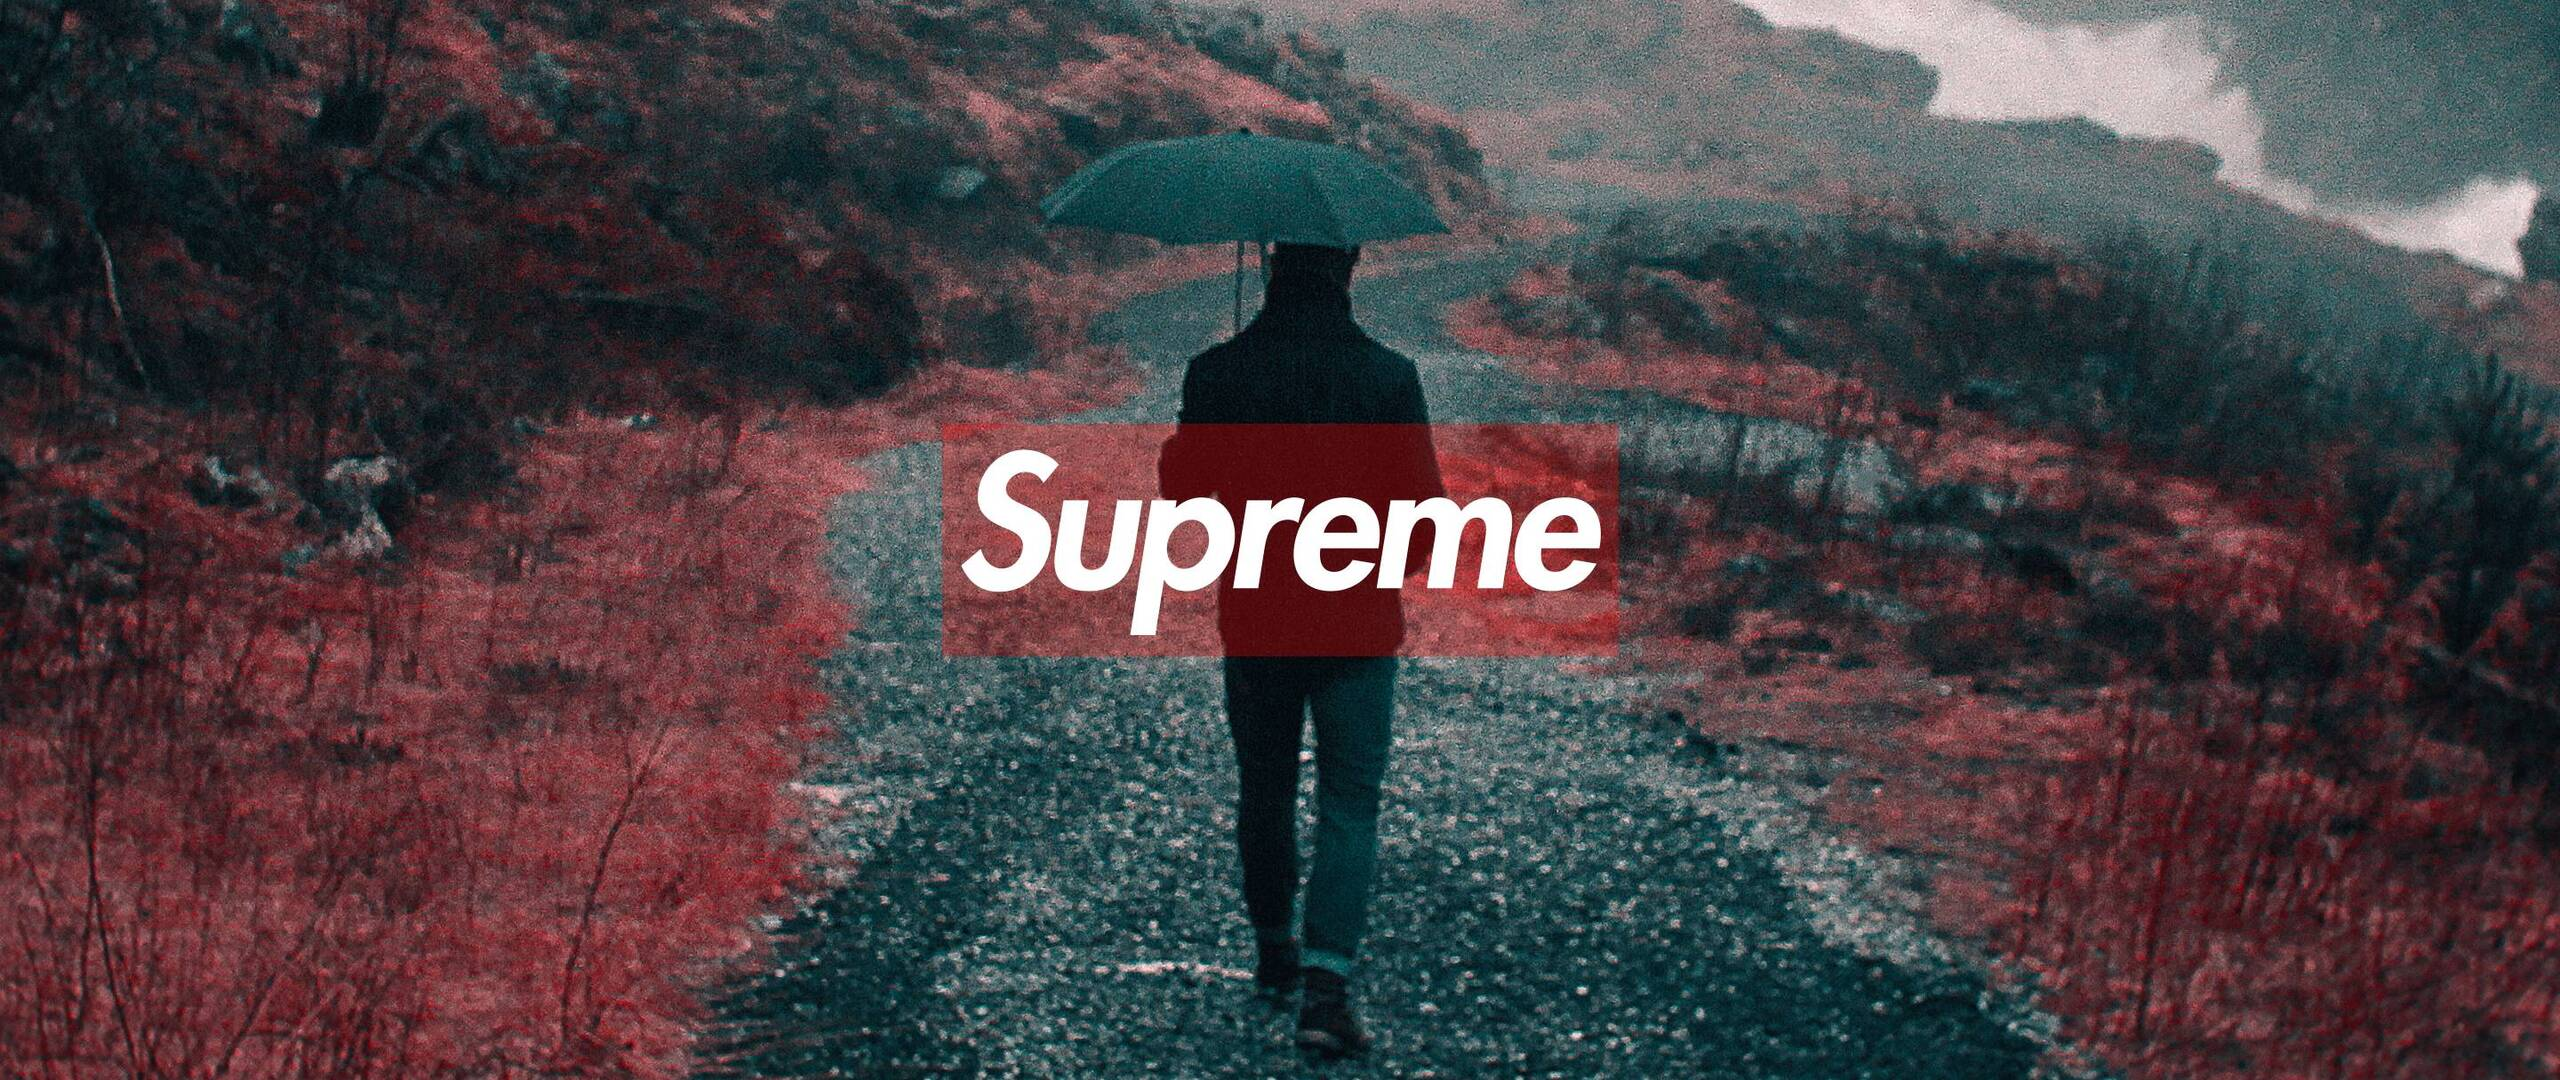 2560x1080 Supreme 2560x1080 Resolution HD 4k Wallpapers, Images, Backgrounds, Photos and Pictures